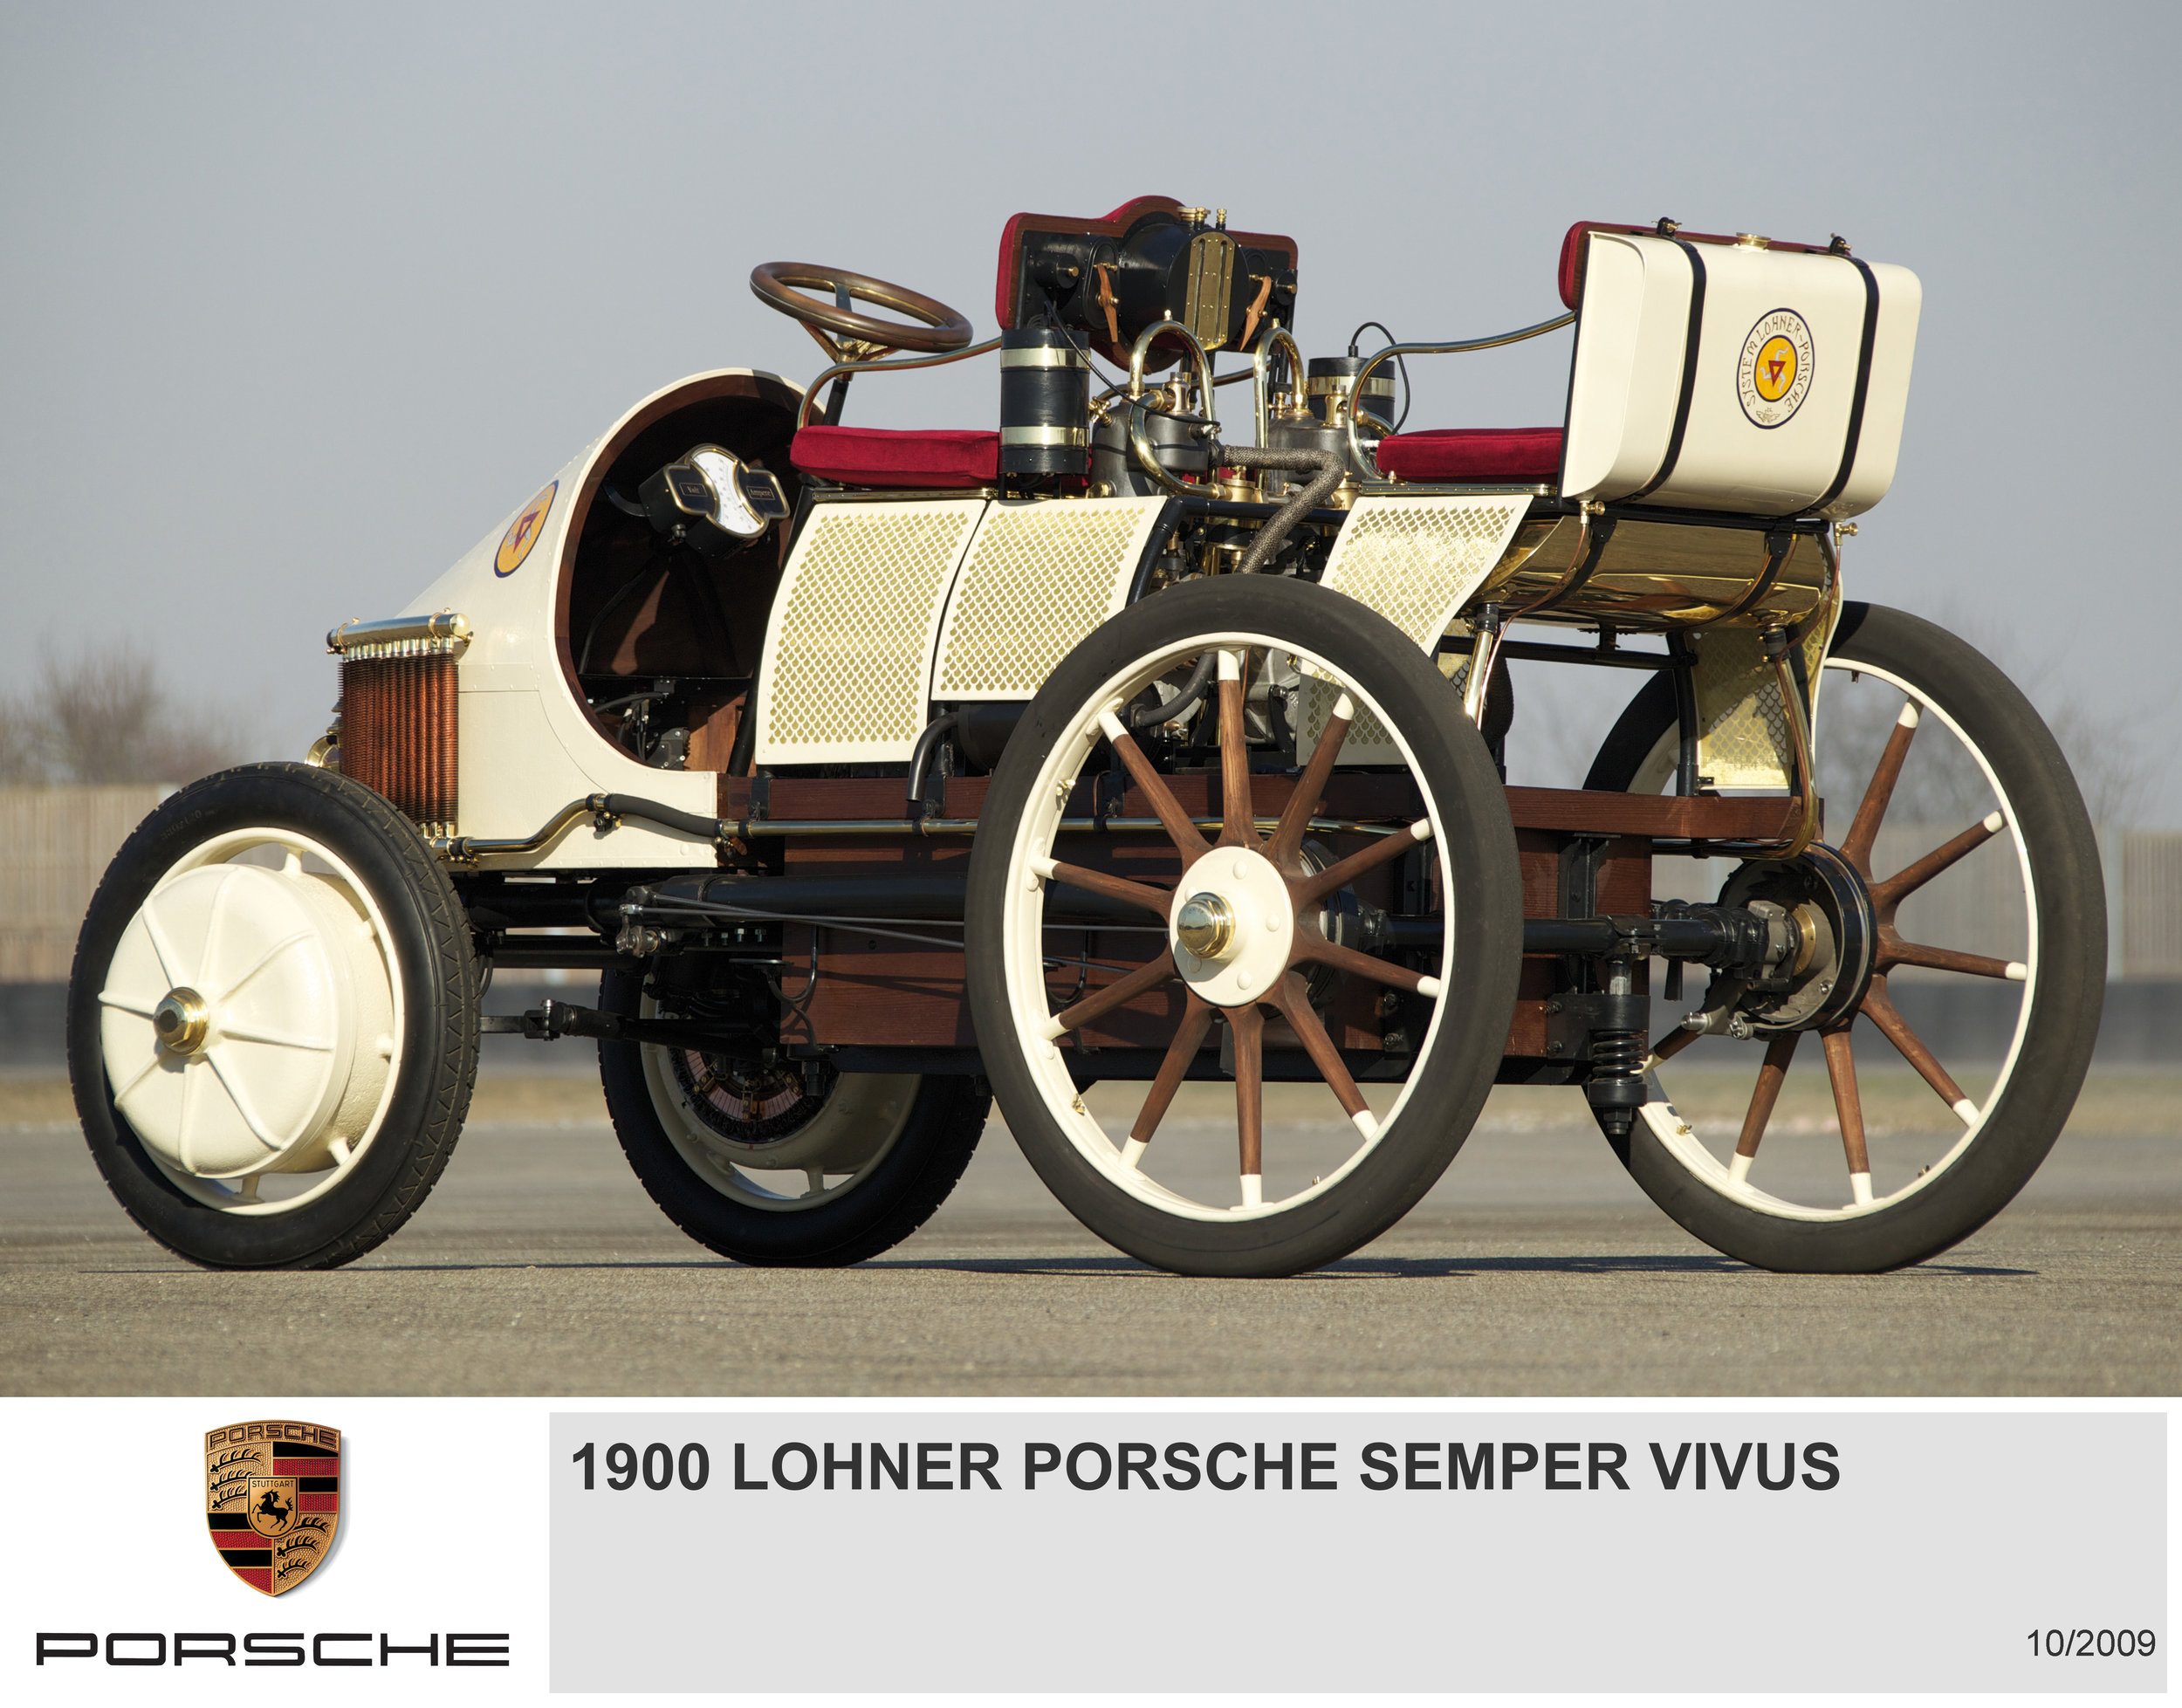 Lohner Porsche.. At the turn of the 20th century., visionary. Ferdinand pioneered making wheels as free-standing electric motors. A reinvention in the 21st.